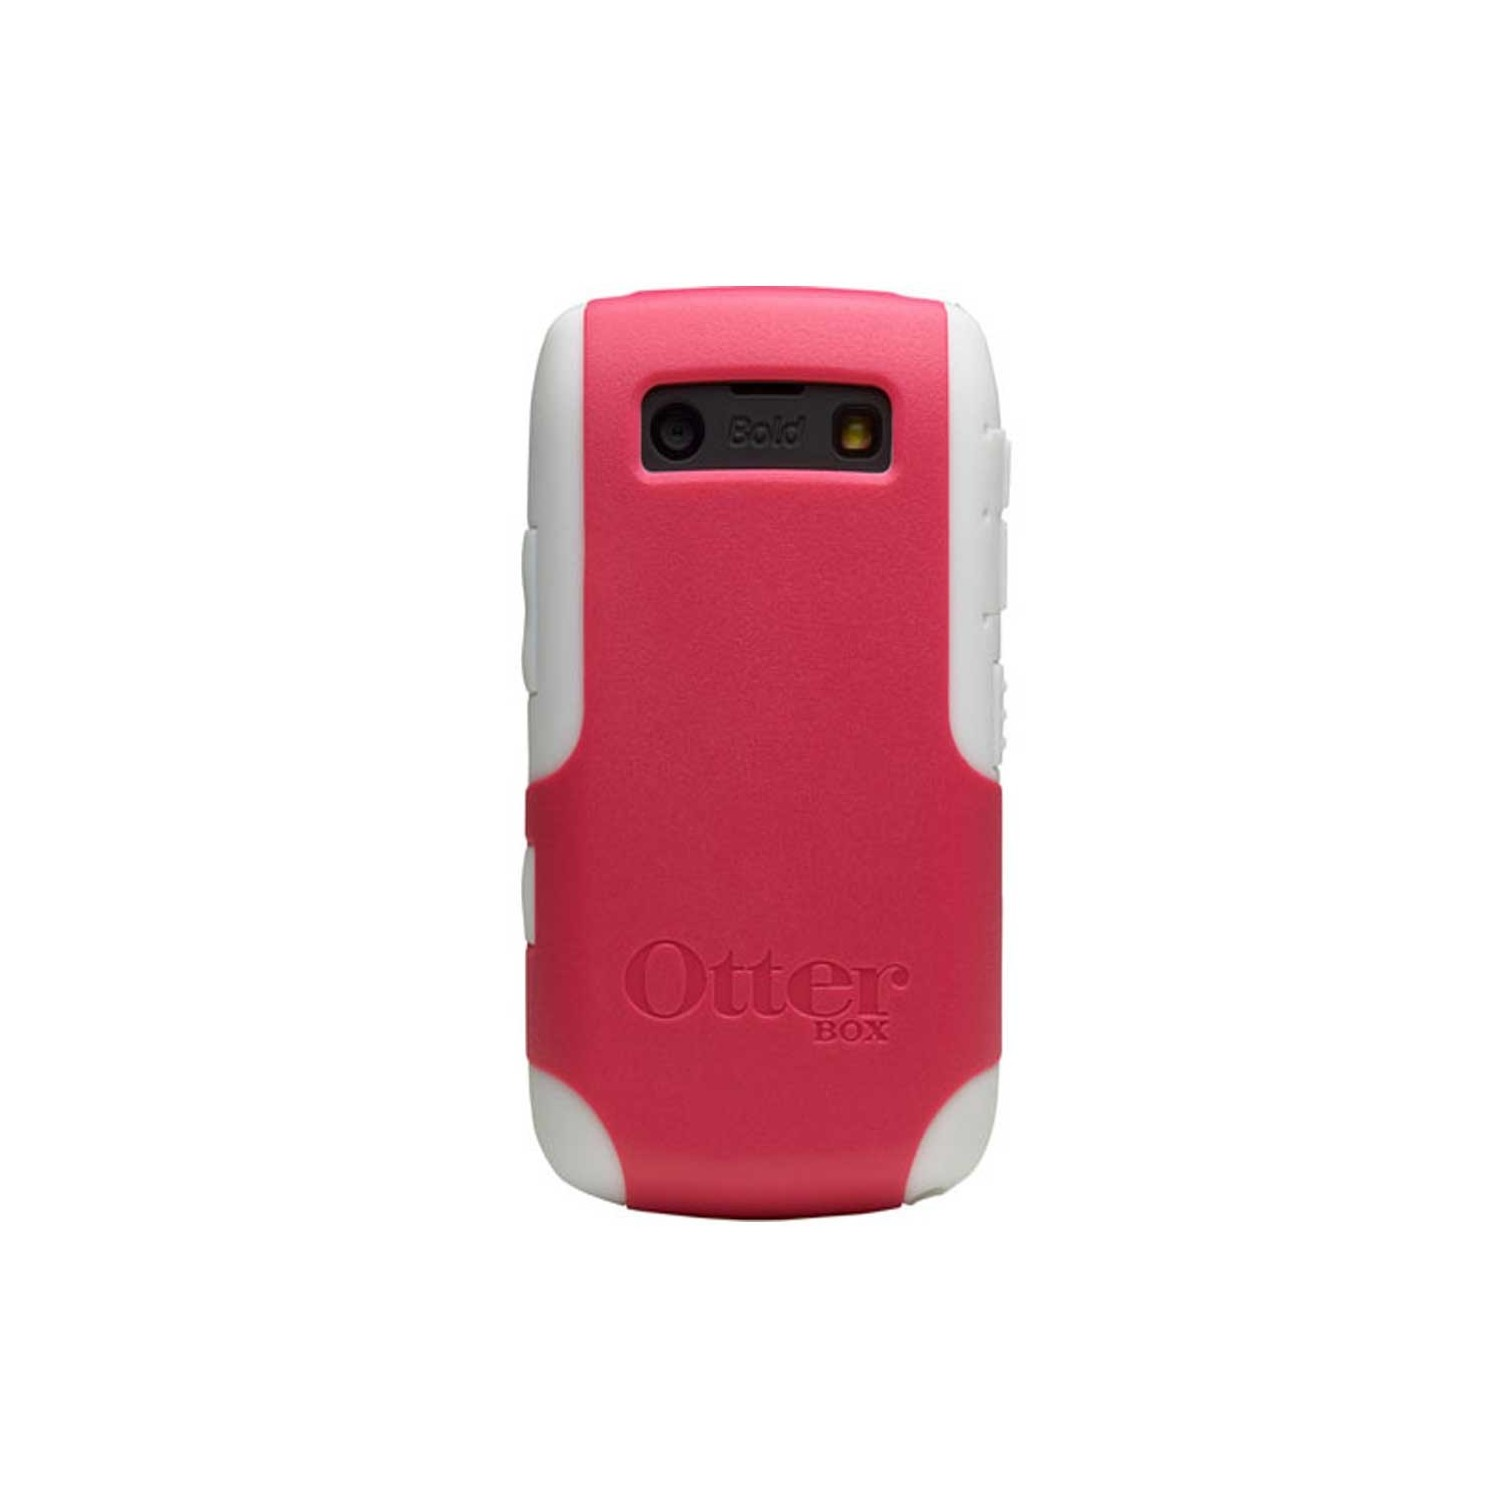 Case - Otterbox Commuter for Blackberry 9700 9780 Bold Pink